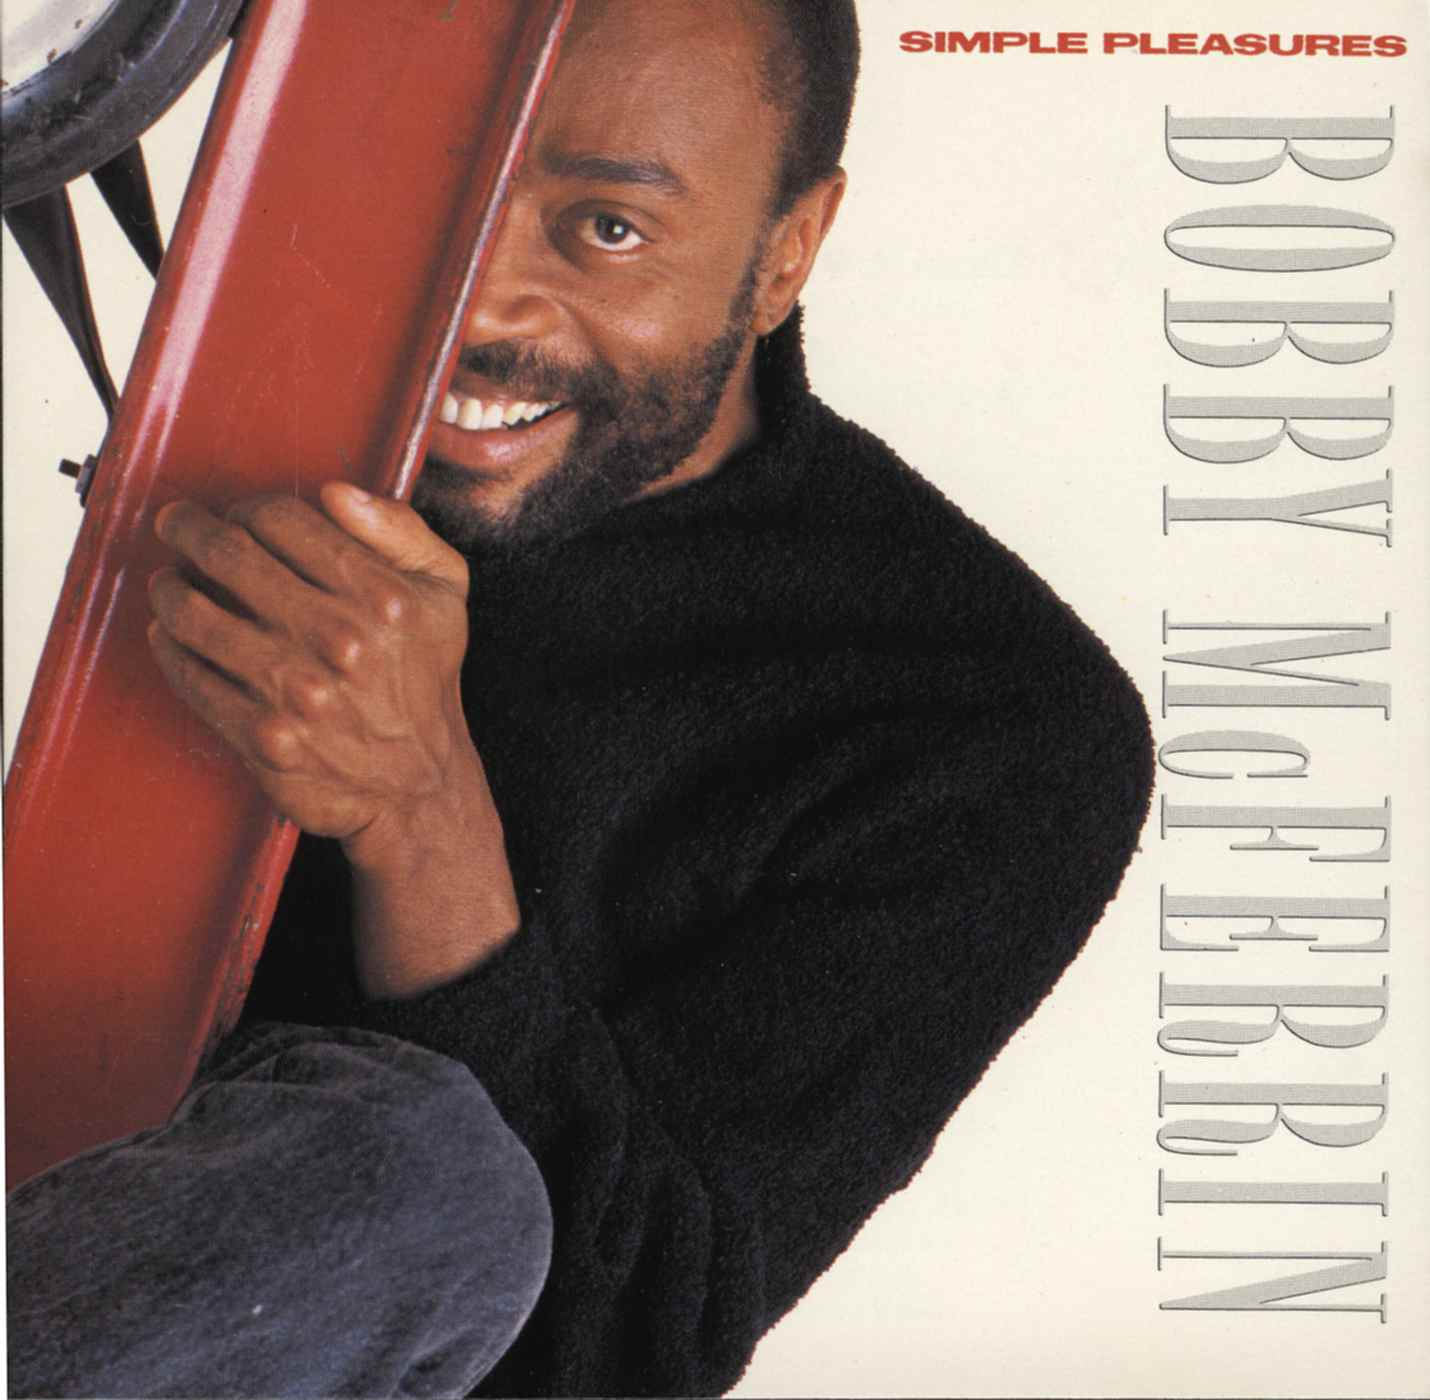 Bobby McFerrin - Simple Pleasures cover front